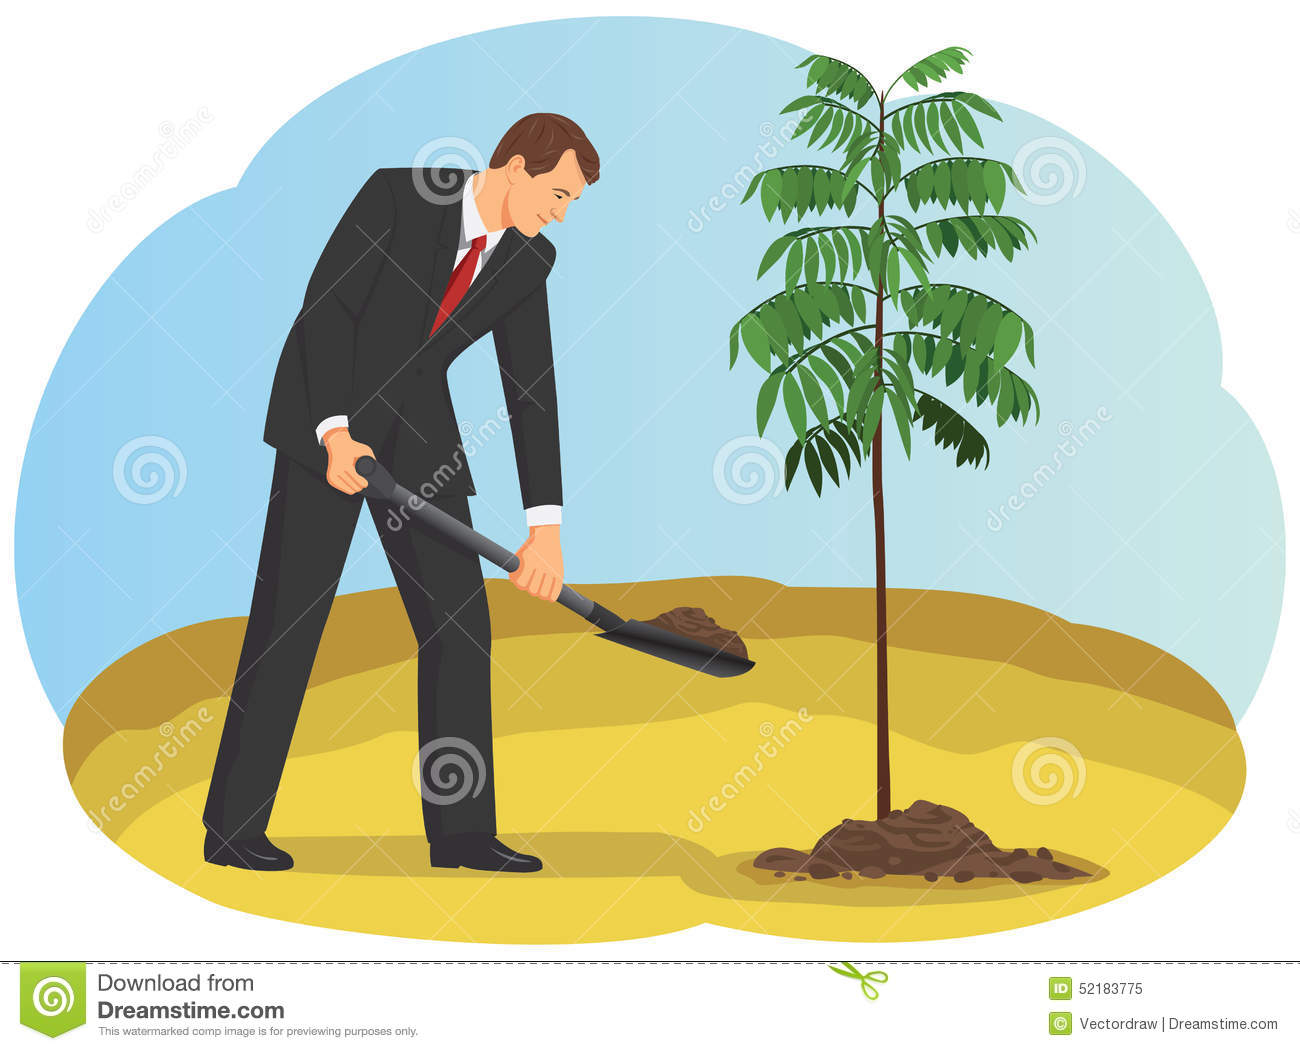 L 39 homme d 39 affaires plante un arbre illustration de vecteur for Plante un arbre